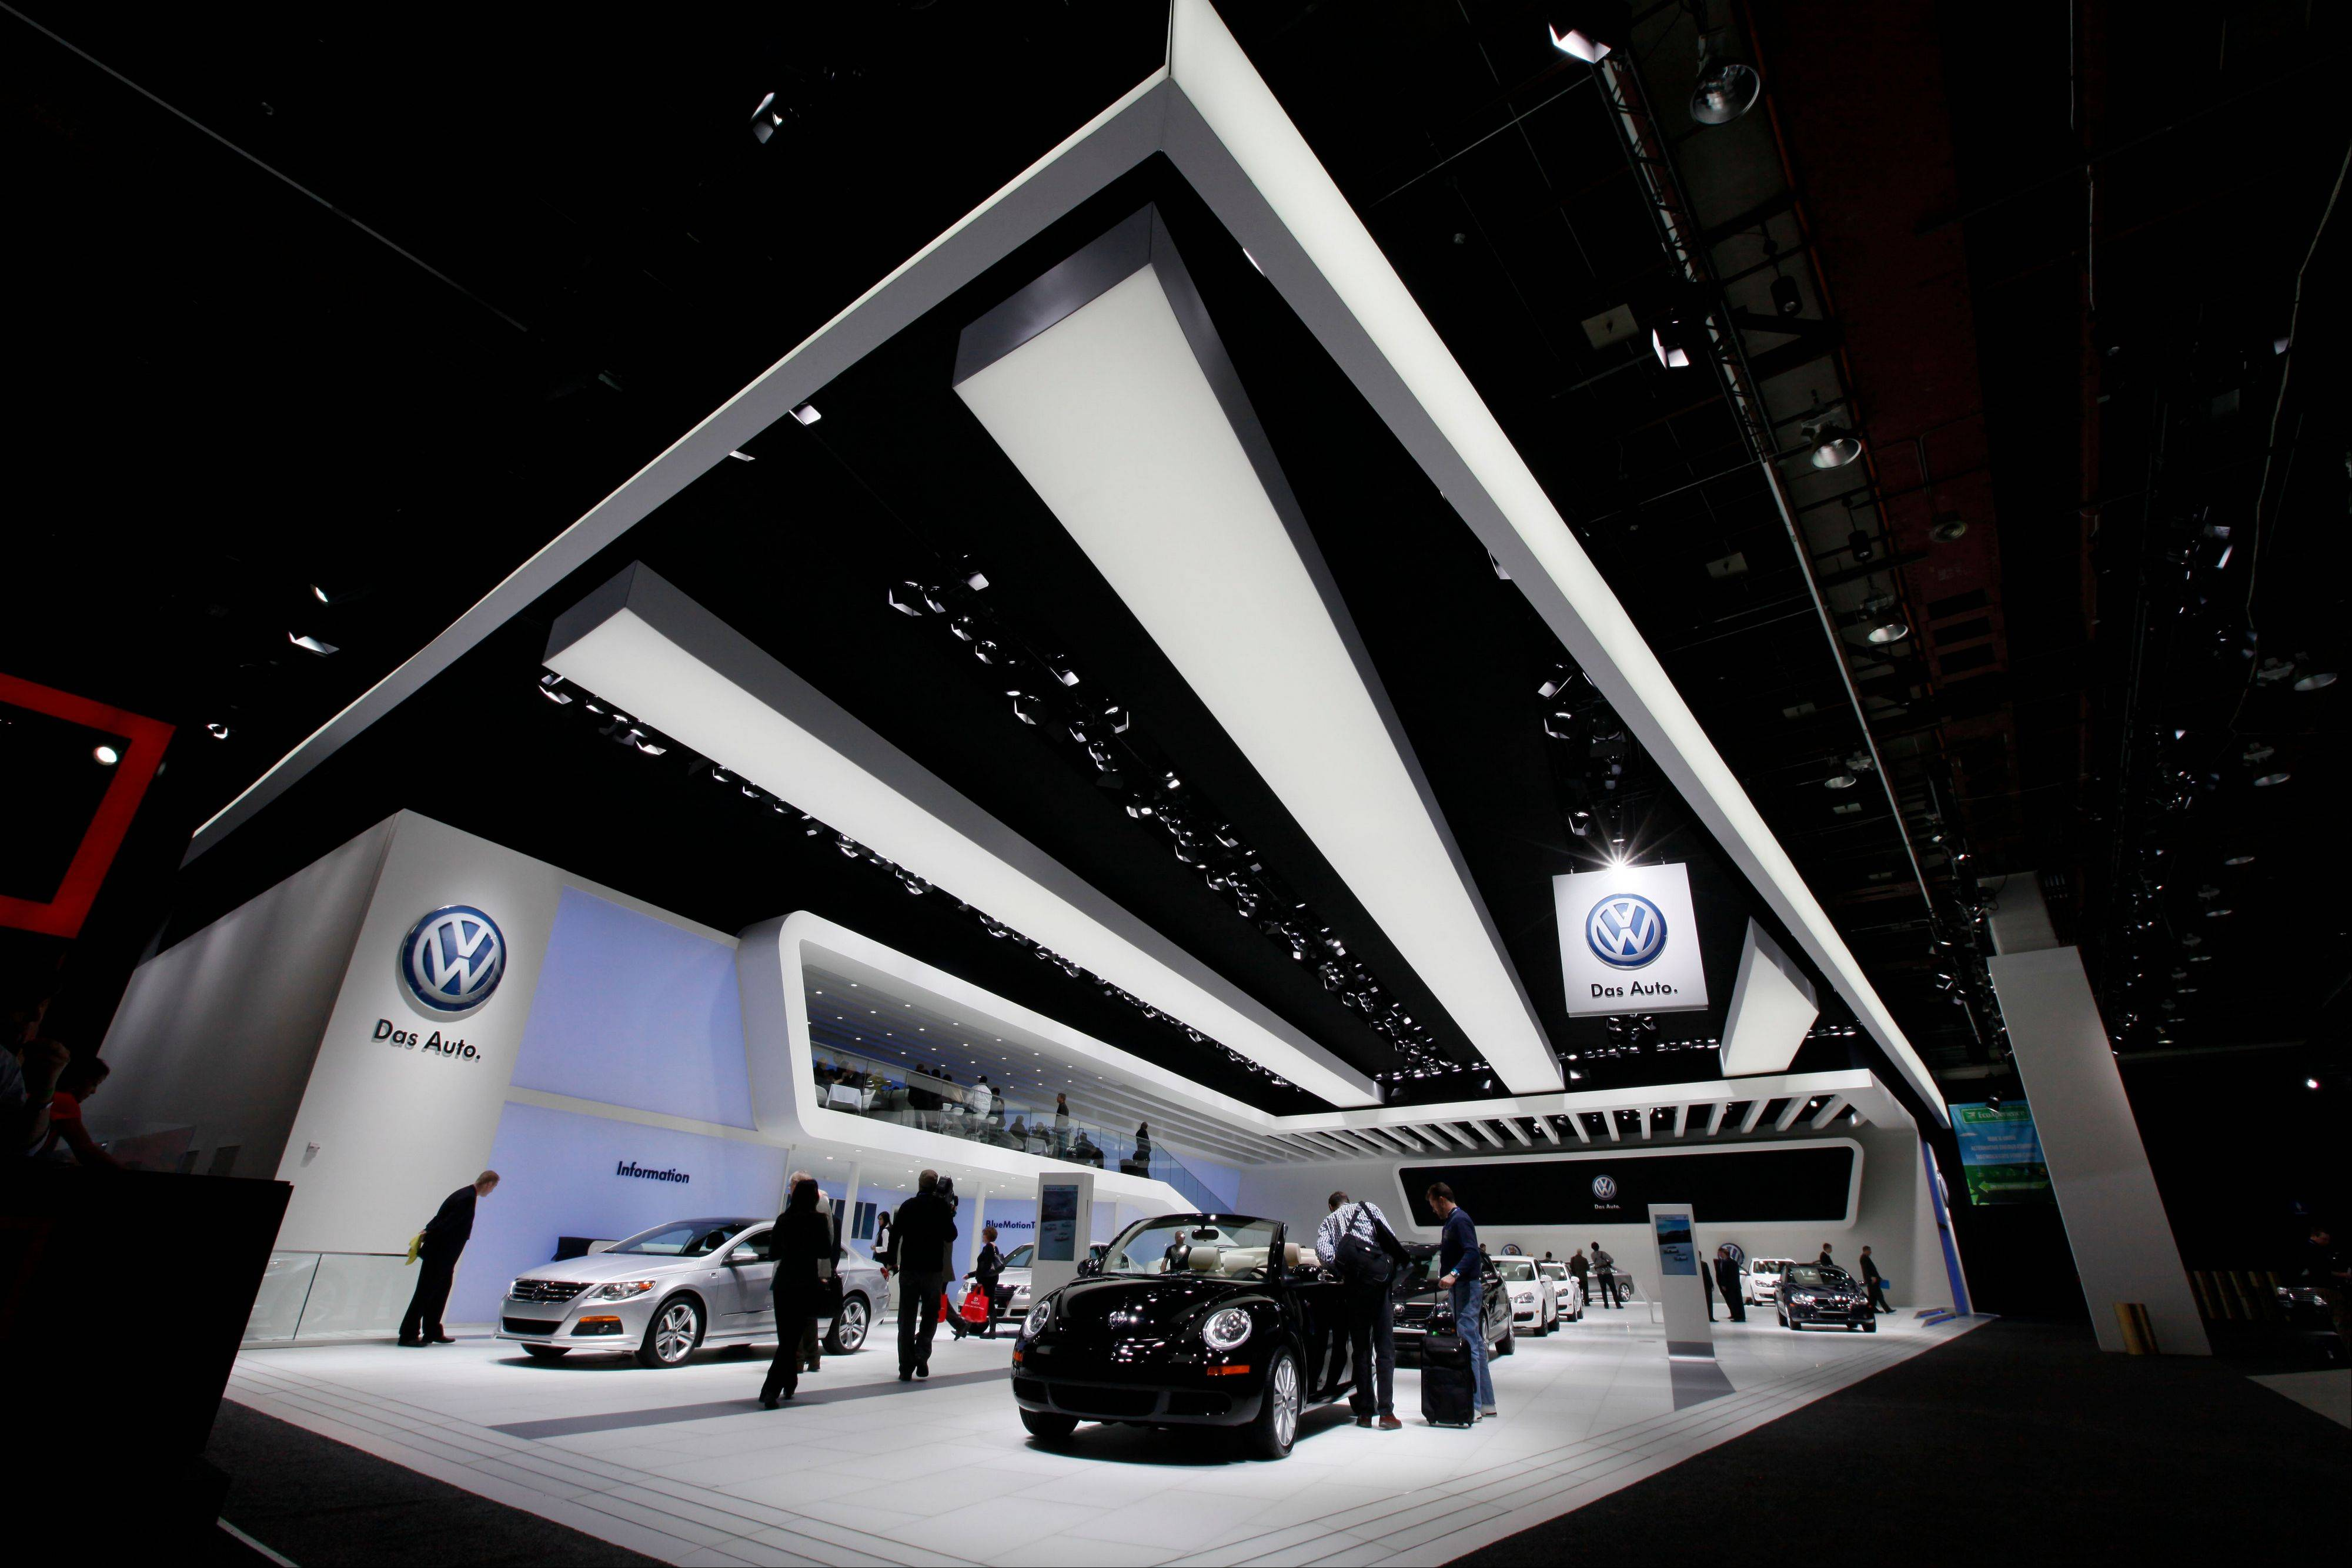 Volkswagens are displayed at the North American International Auto Show in Detroit.